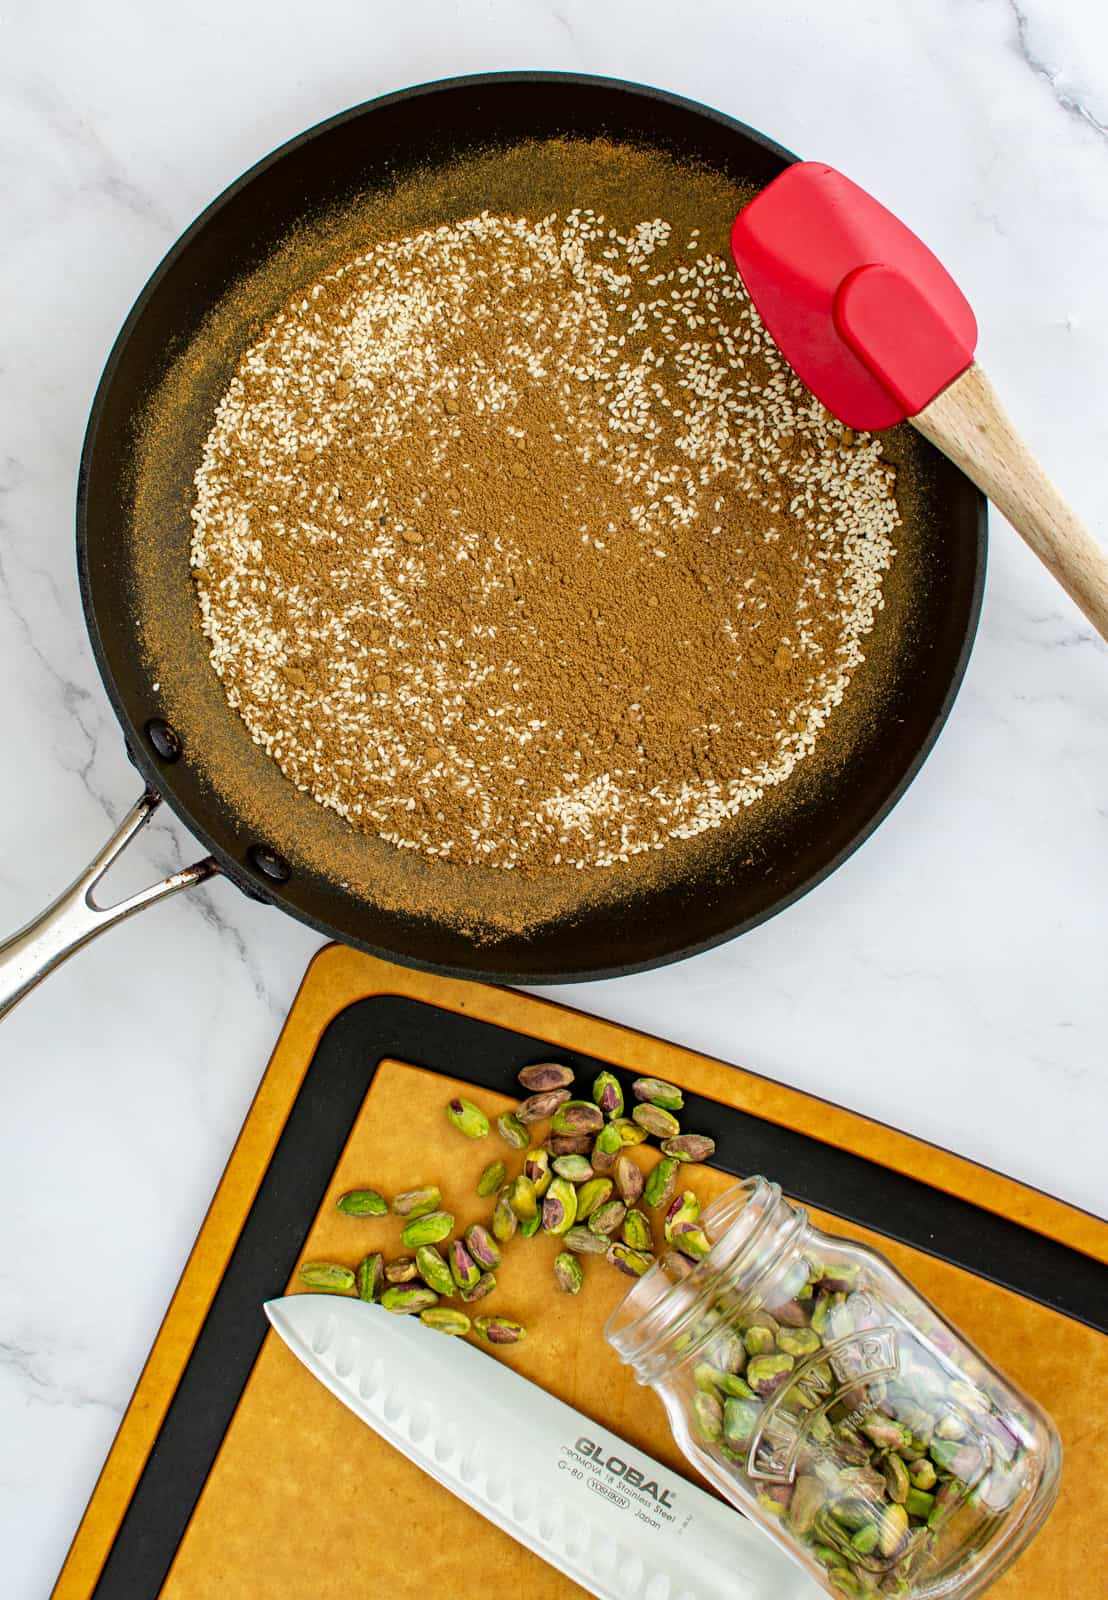 spices toasting in frying pan, pistachio on a chopping board